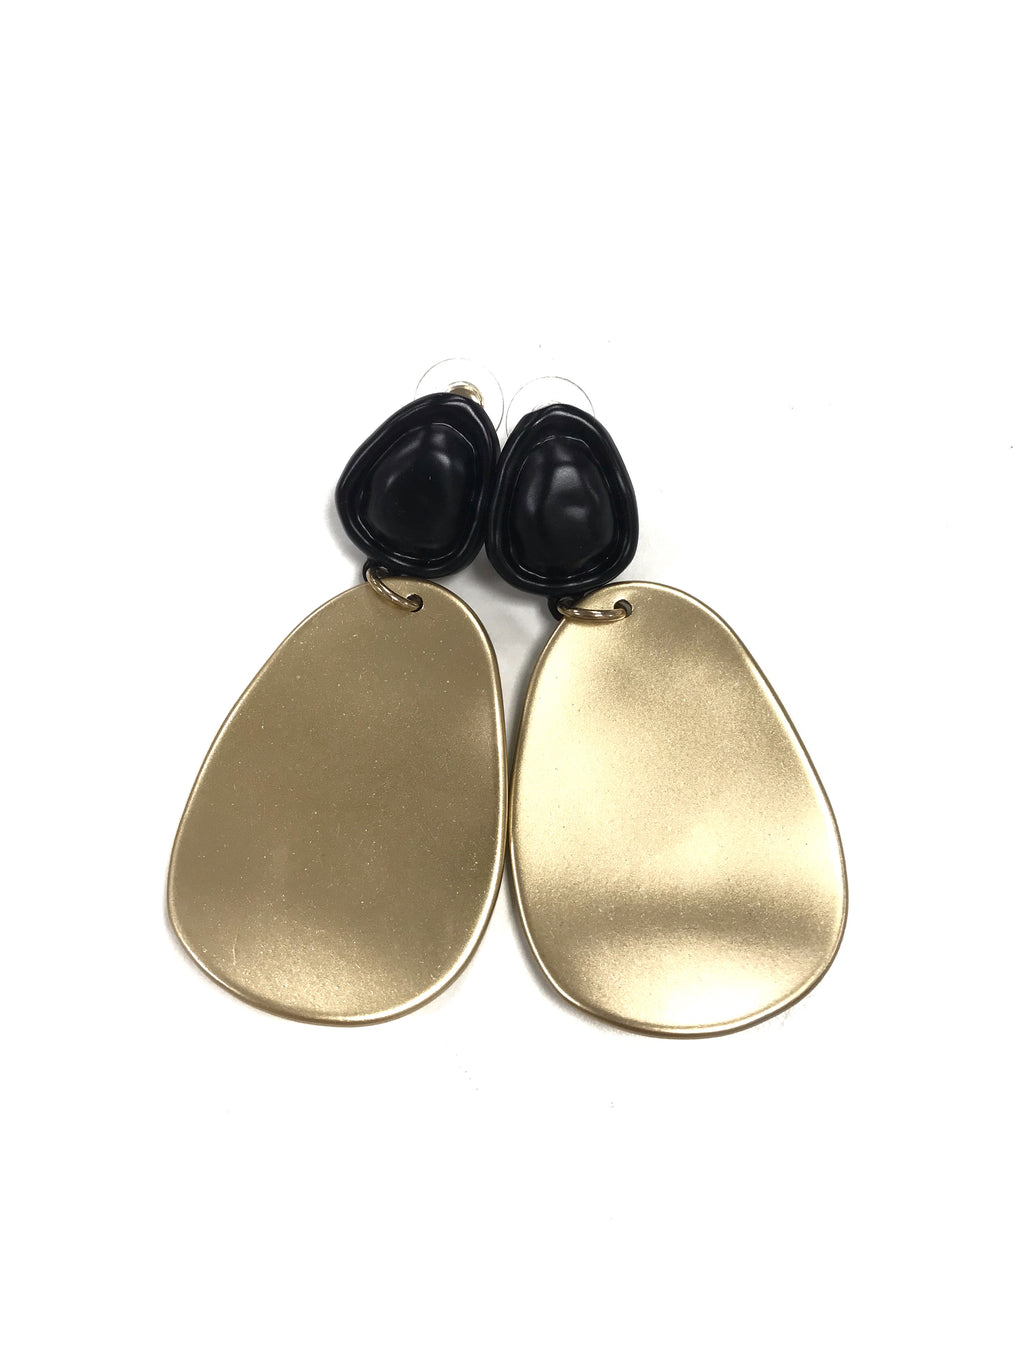 REW statement gold pebble earrings fashion style